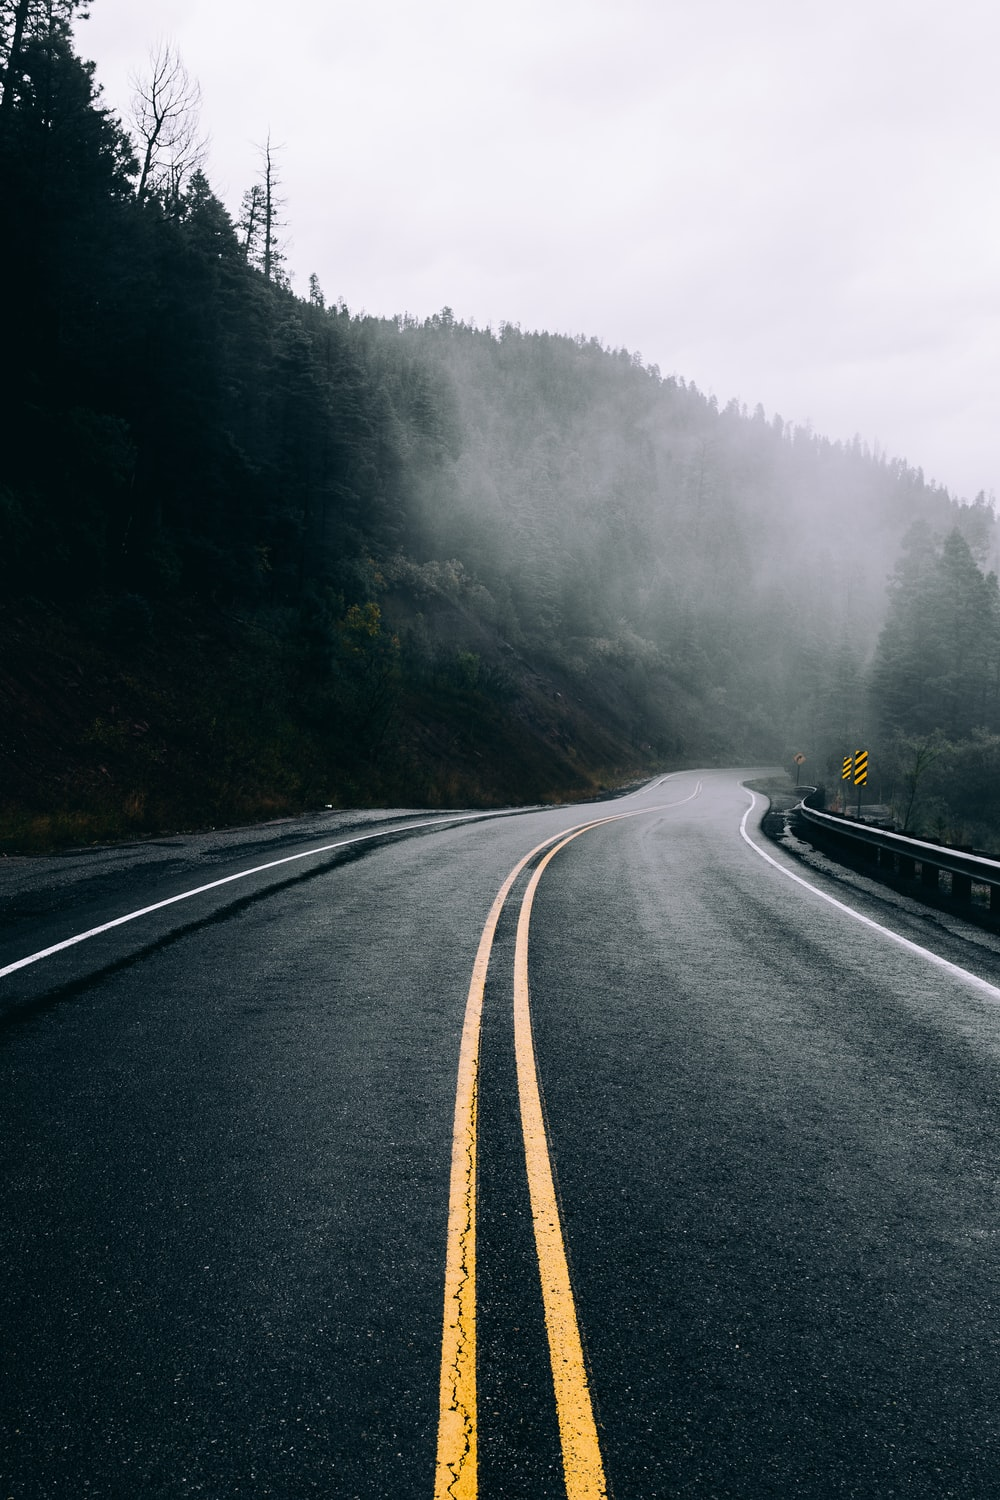 black asphalt road between green trees covered with fog during daytime